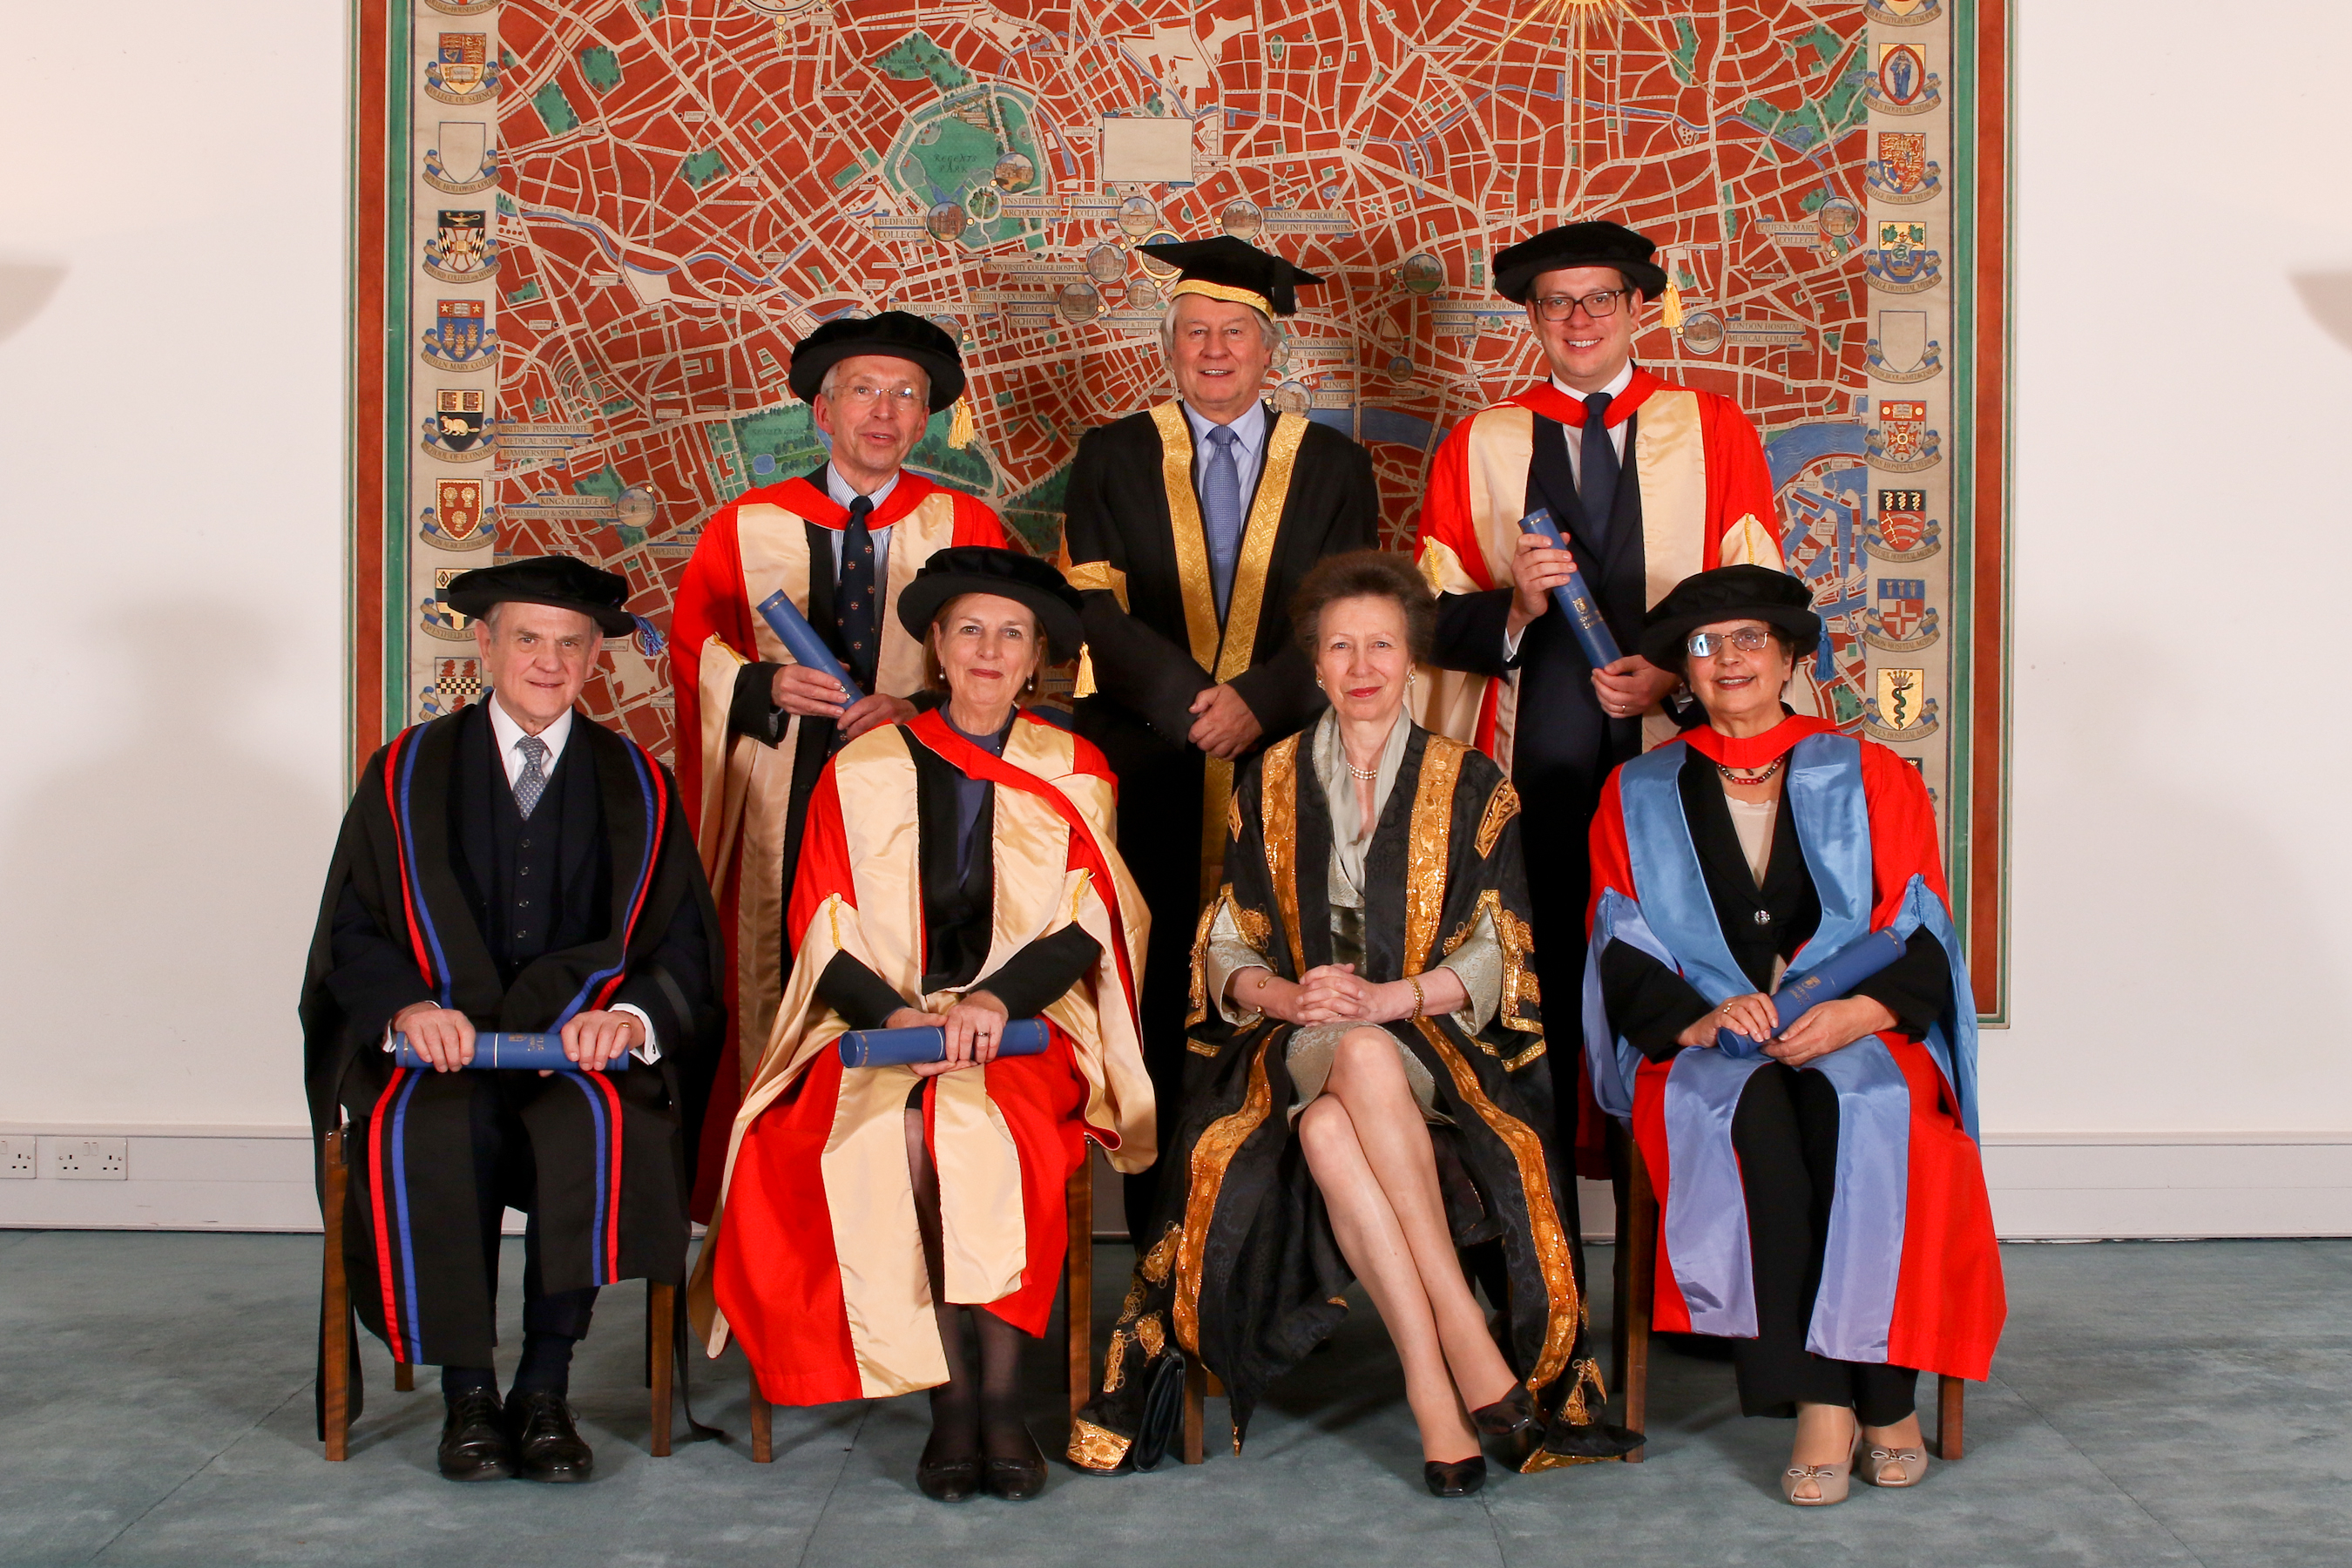 University of London Foundation Day 2016 at Senate House, London. The Chancellor HRH The Princess Royal presented an Honorary Fellow upon Charles Perrin CBE Hon. FRCP and Conferred four Honorary Graduants, Baroness Blackstone, Michael Hayman MBE, Professo